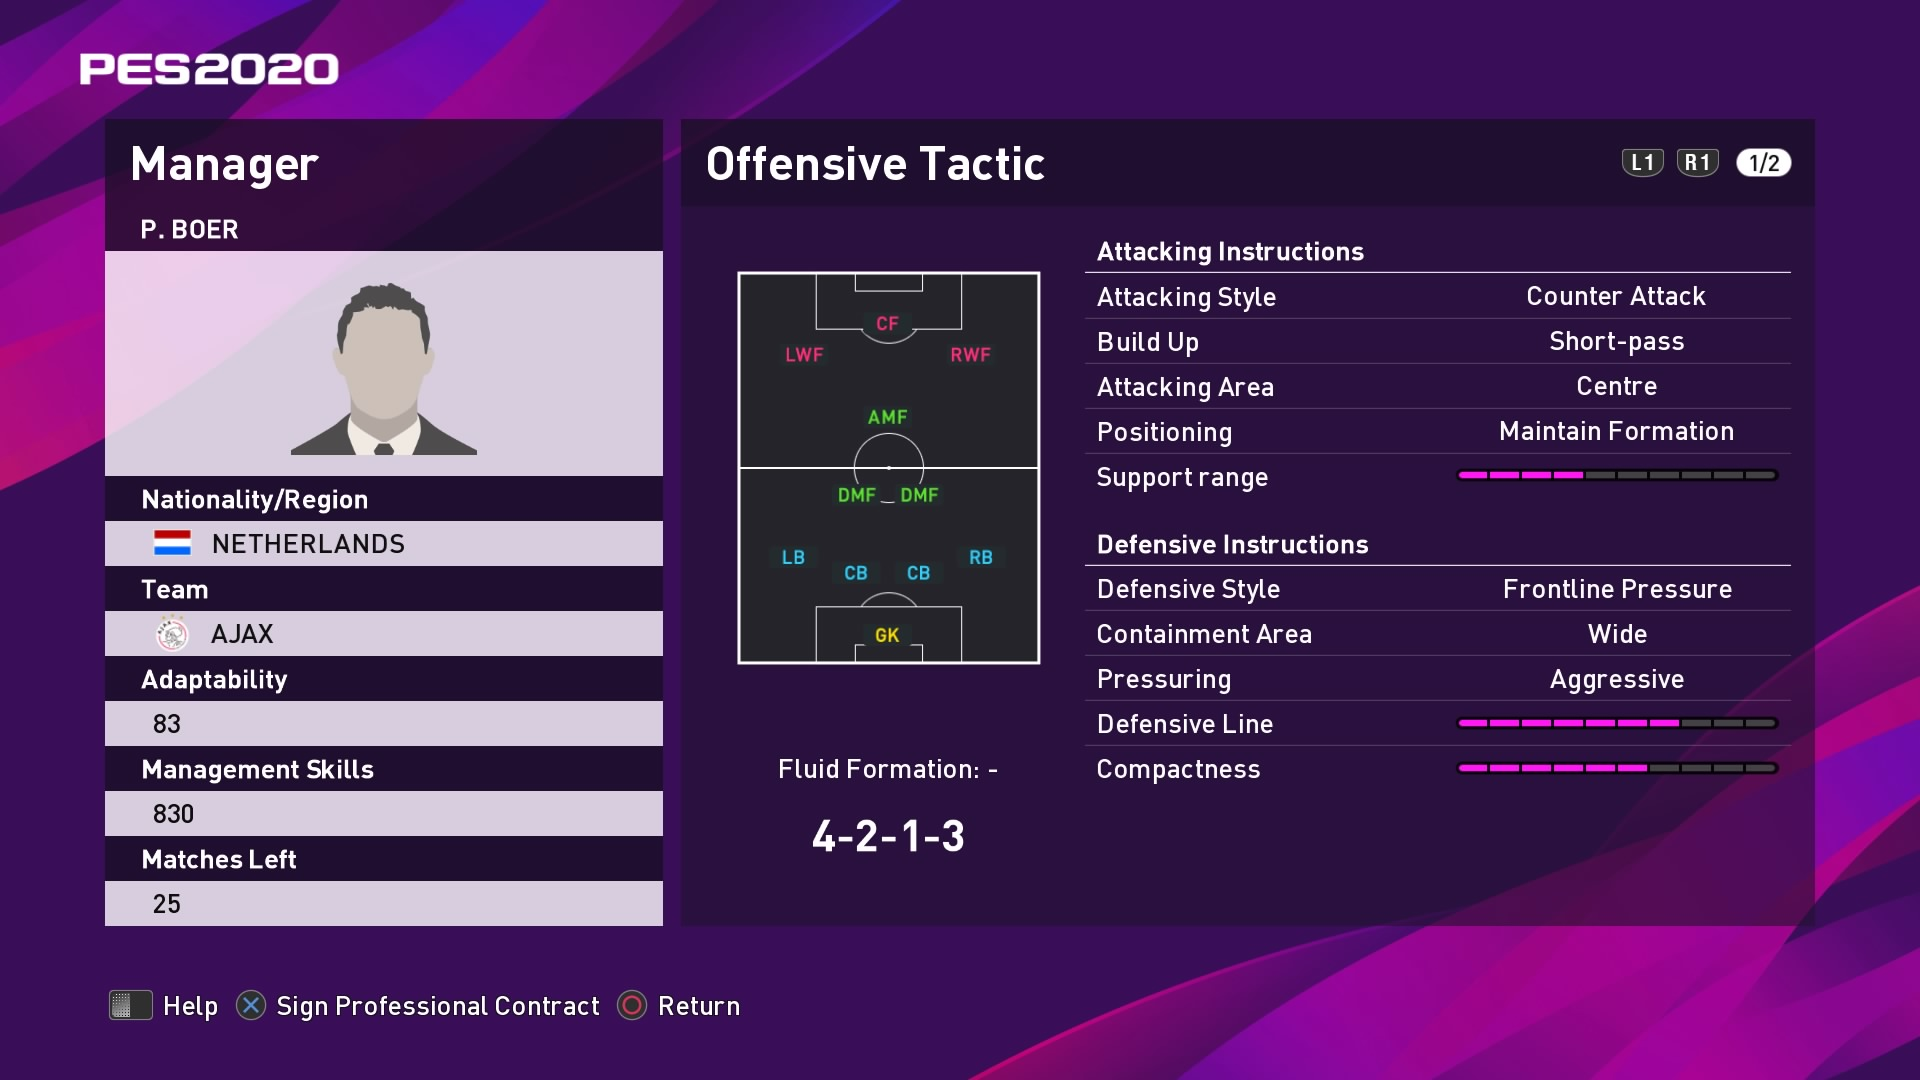 P. Boer (2) (Erik ten Hag) Offensive Tactic in PES 2020 myClub